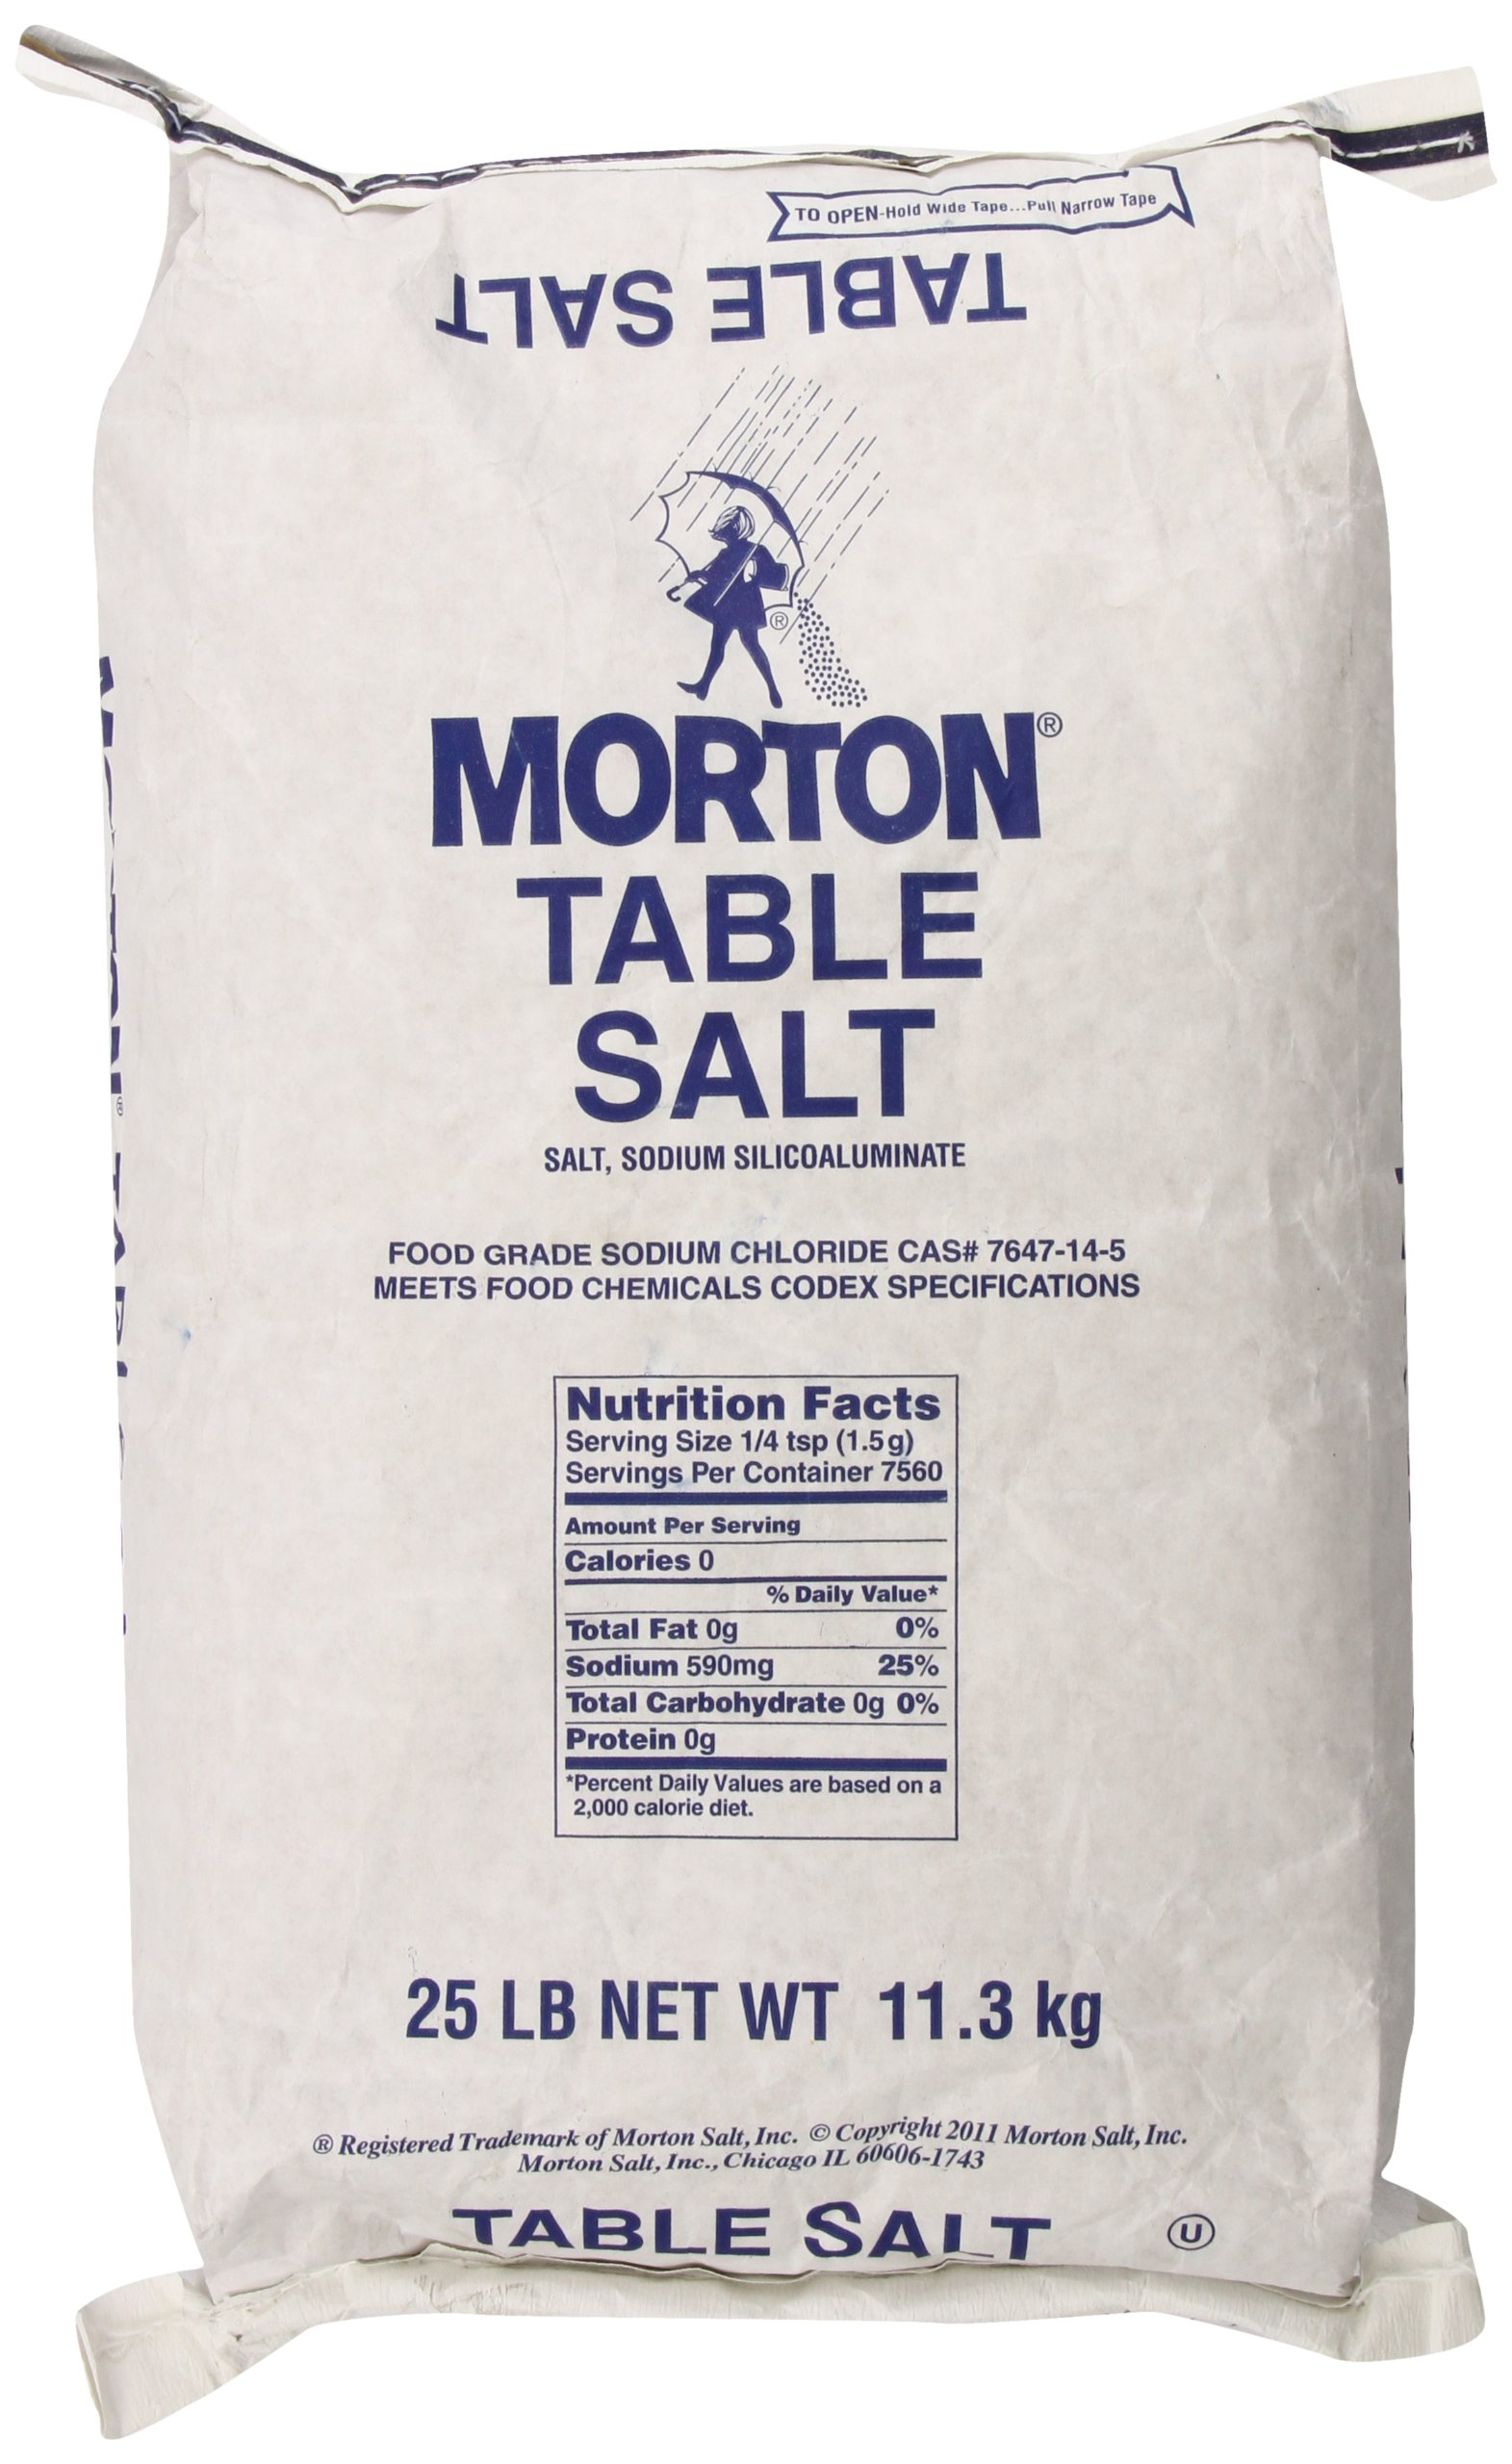 MORTON Table Salt, Bulk Salt, Foodservice, Great for Restaurants, Excellent for Cooking, Baking and Seasoning, Non Iodized Salt, Iodide Free, 25 Pound by Morton